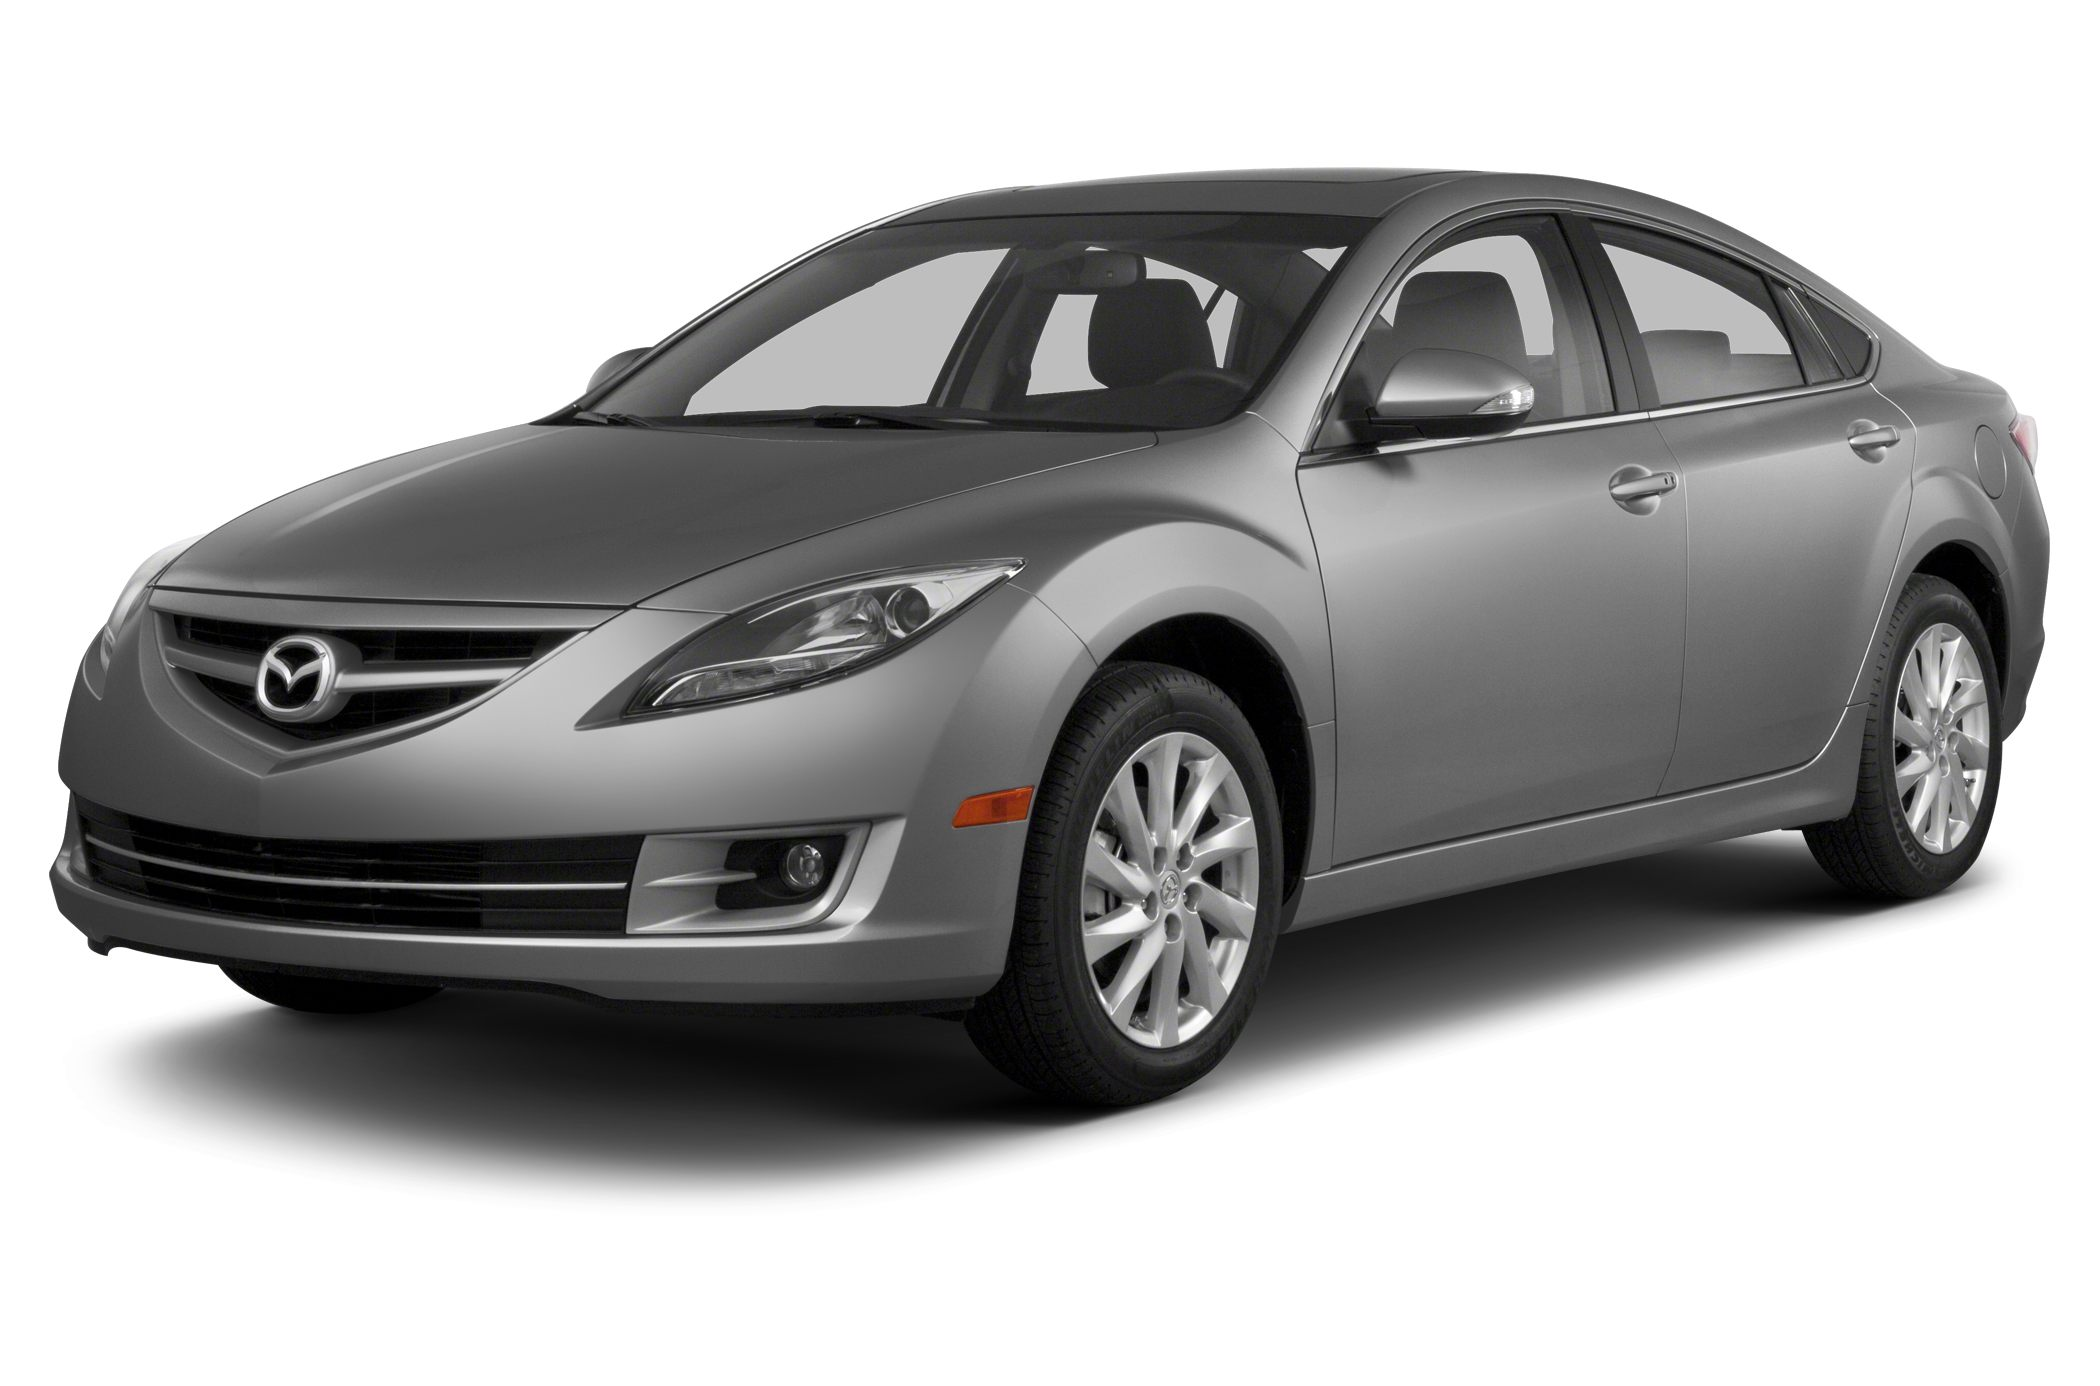 2013 mazda mazda6 photos informations articles. Black Bedroom Furniture Sets. Home Design Ideas